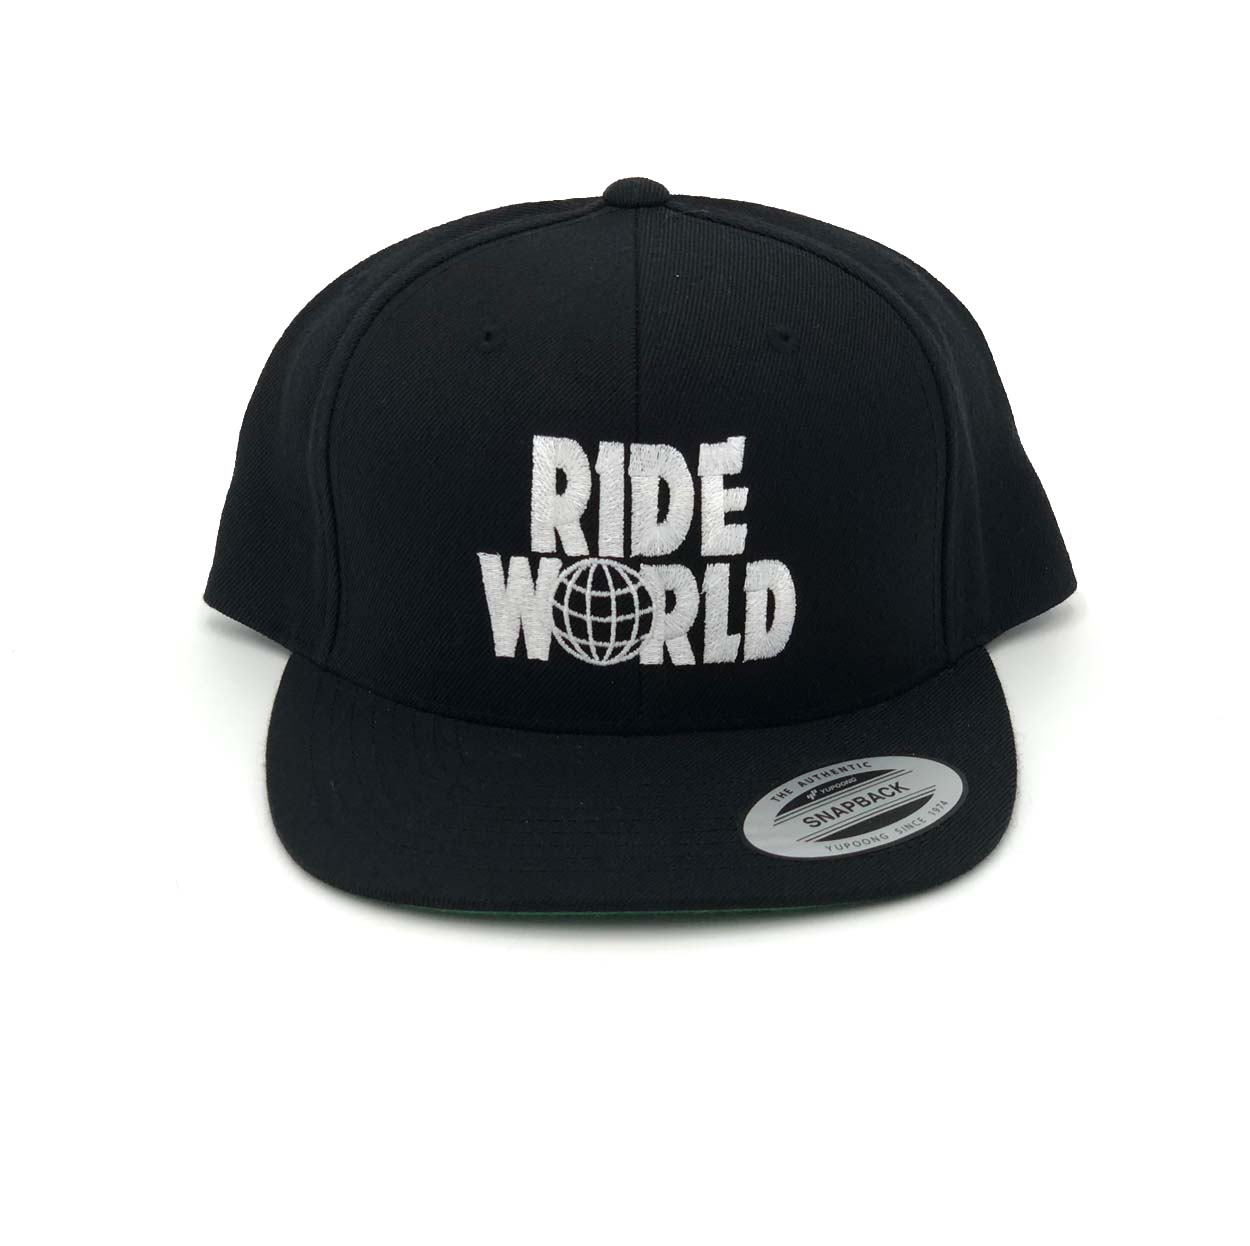 Ride World Logo Classic Embroidered Snapback Flat Brim Hat Black/White